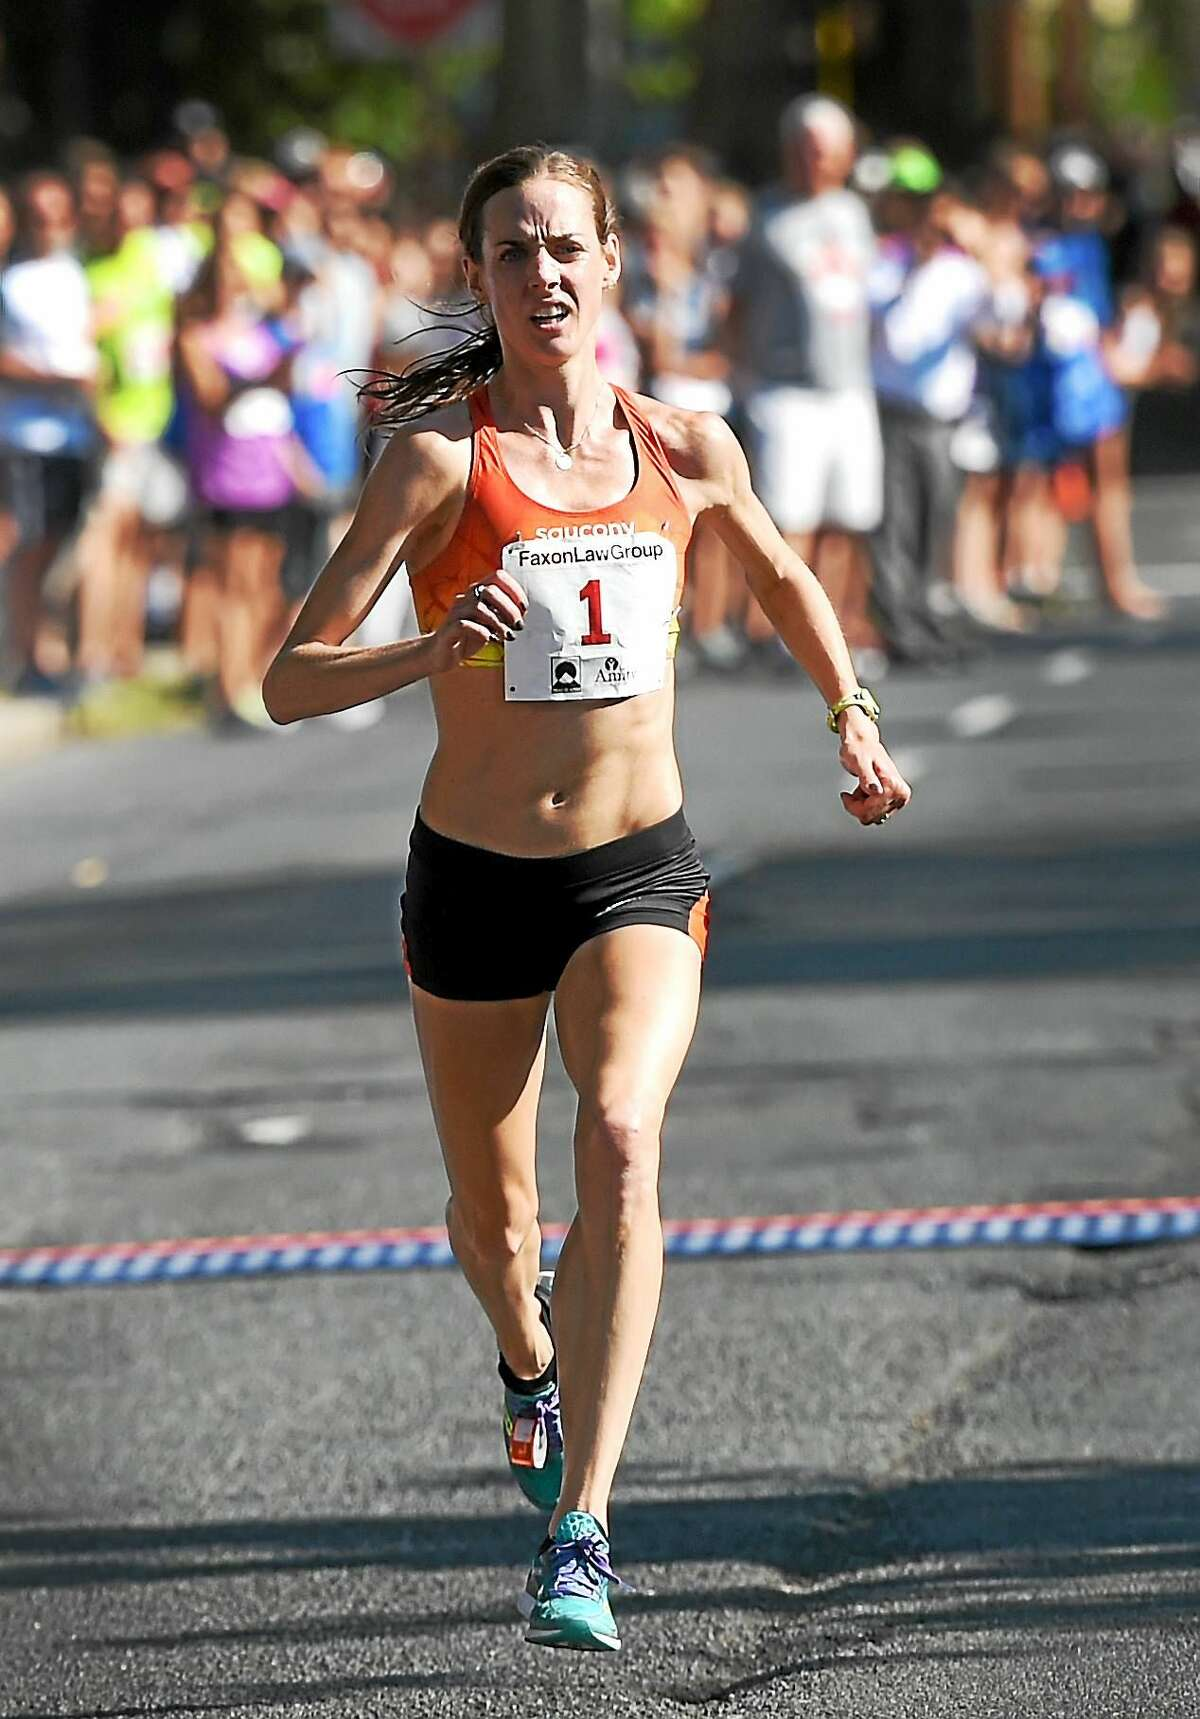 Molly Huddle runs toward the Temple Street finish line en route to winning the Faxon Law New Haven Road Race and 20K national championship on Monday.